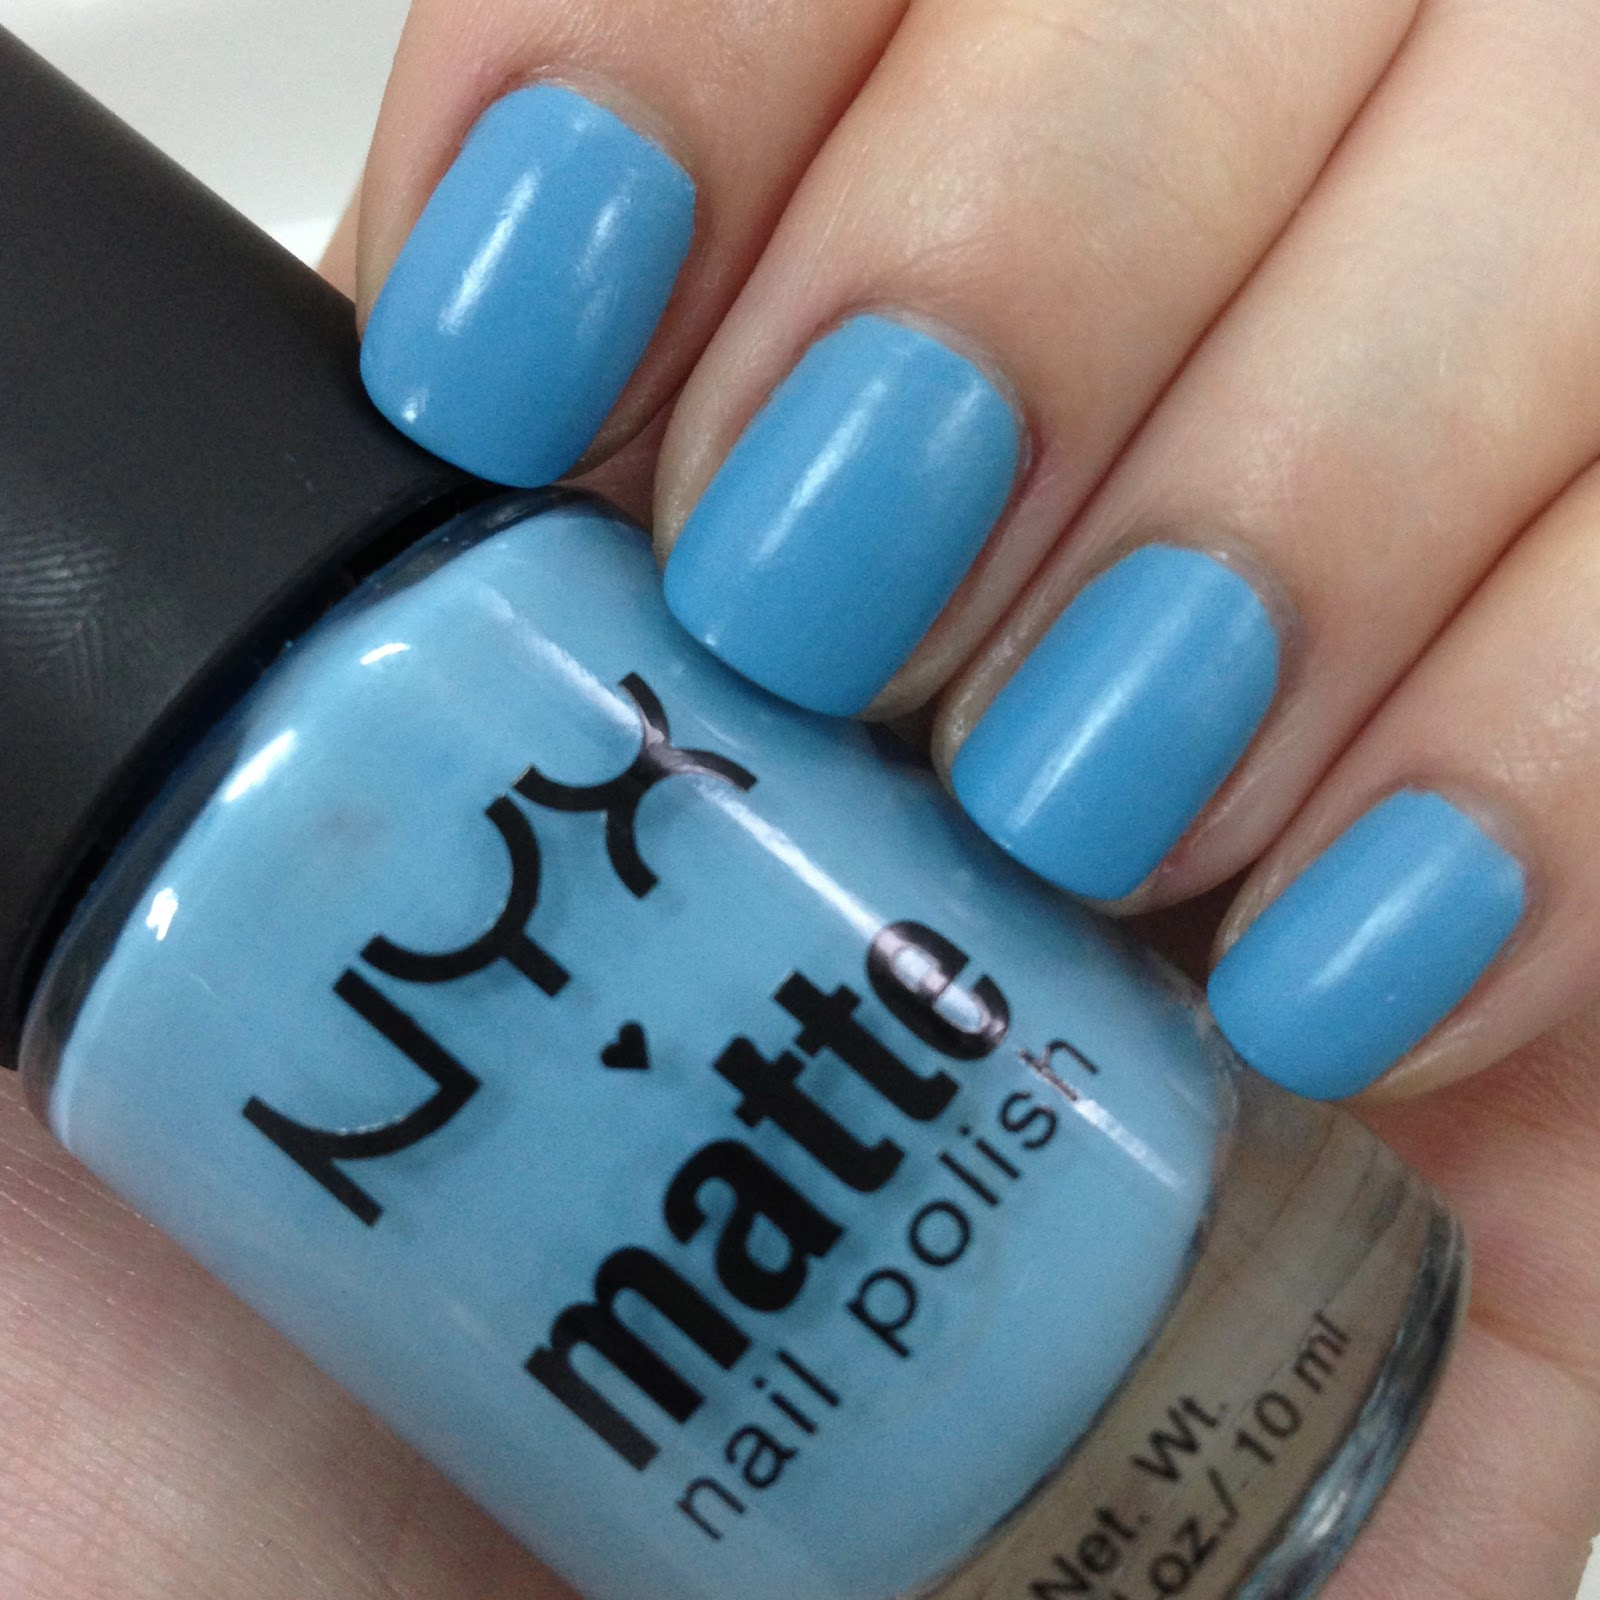 Karen Lives High: NYX Matte Nail Polish in Sky Blue